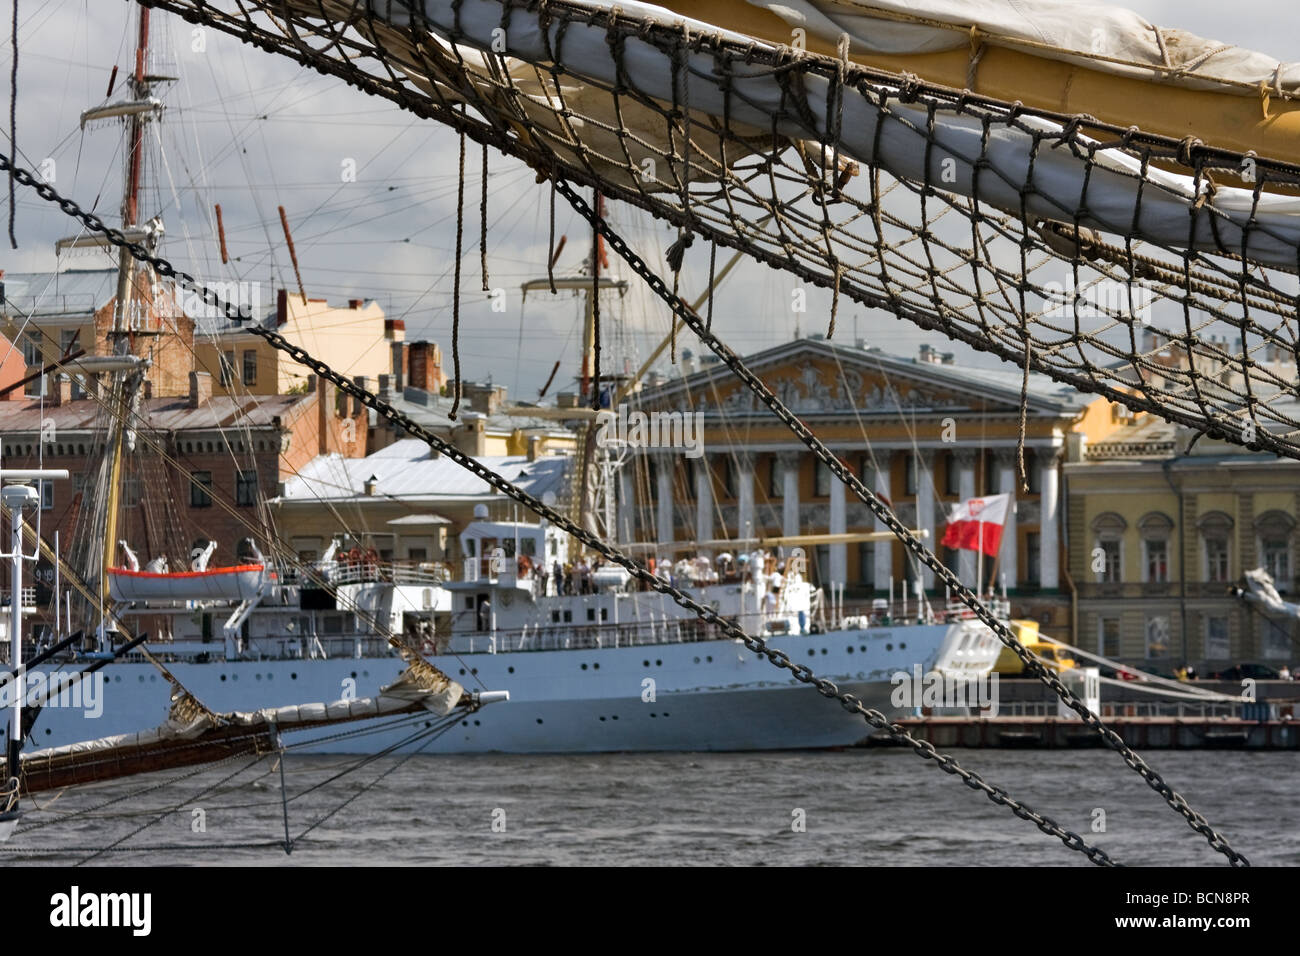 Neva river embankment during TALL SHIPS RACES St Petersburg Russia July 11 14 2009 - Stock Image